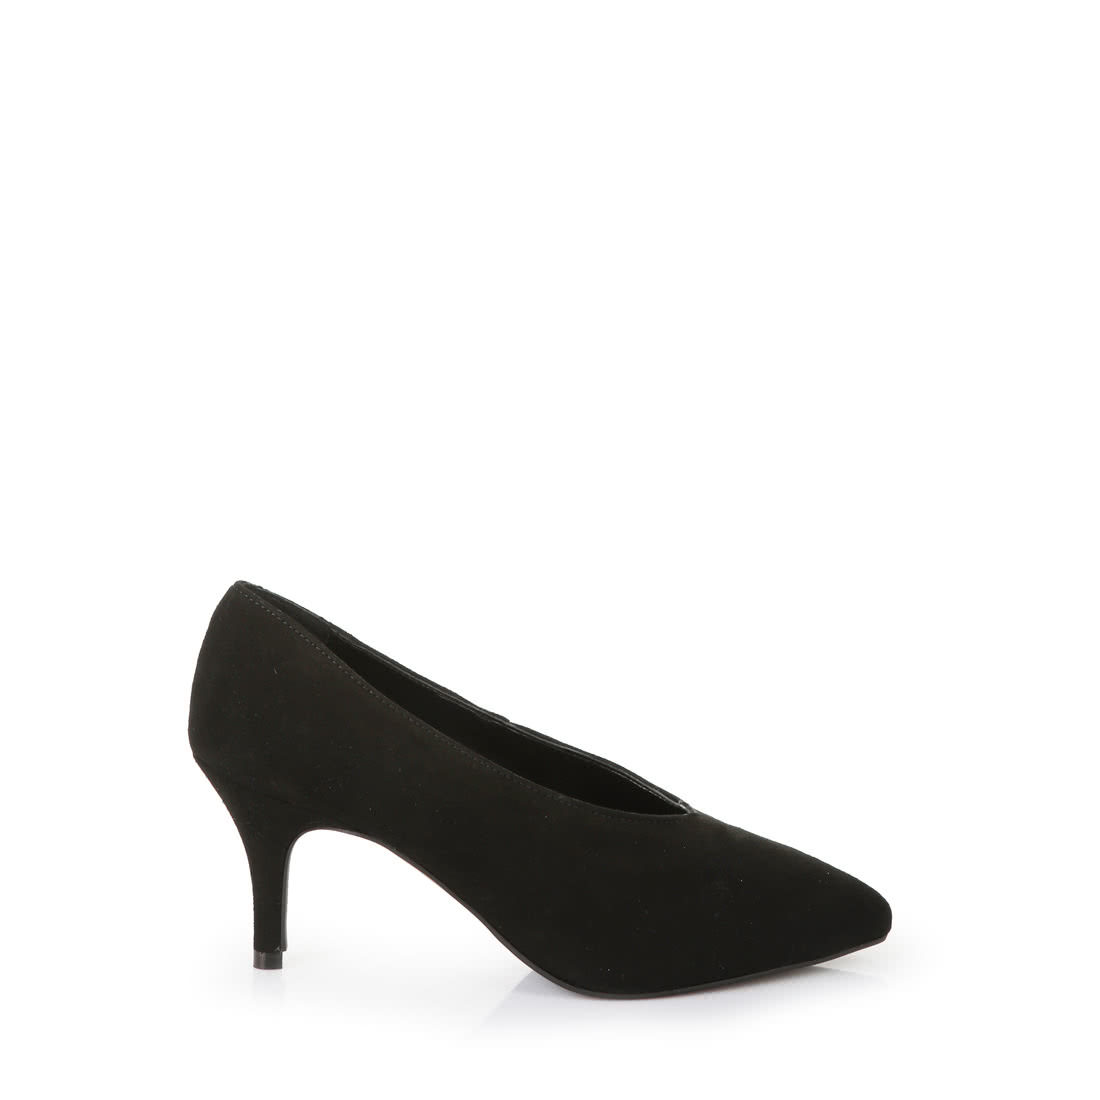 7033b72e2376 Buffalo pointed-toe V-cut courts in black suede buy online in ...